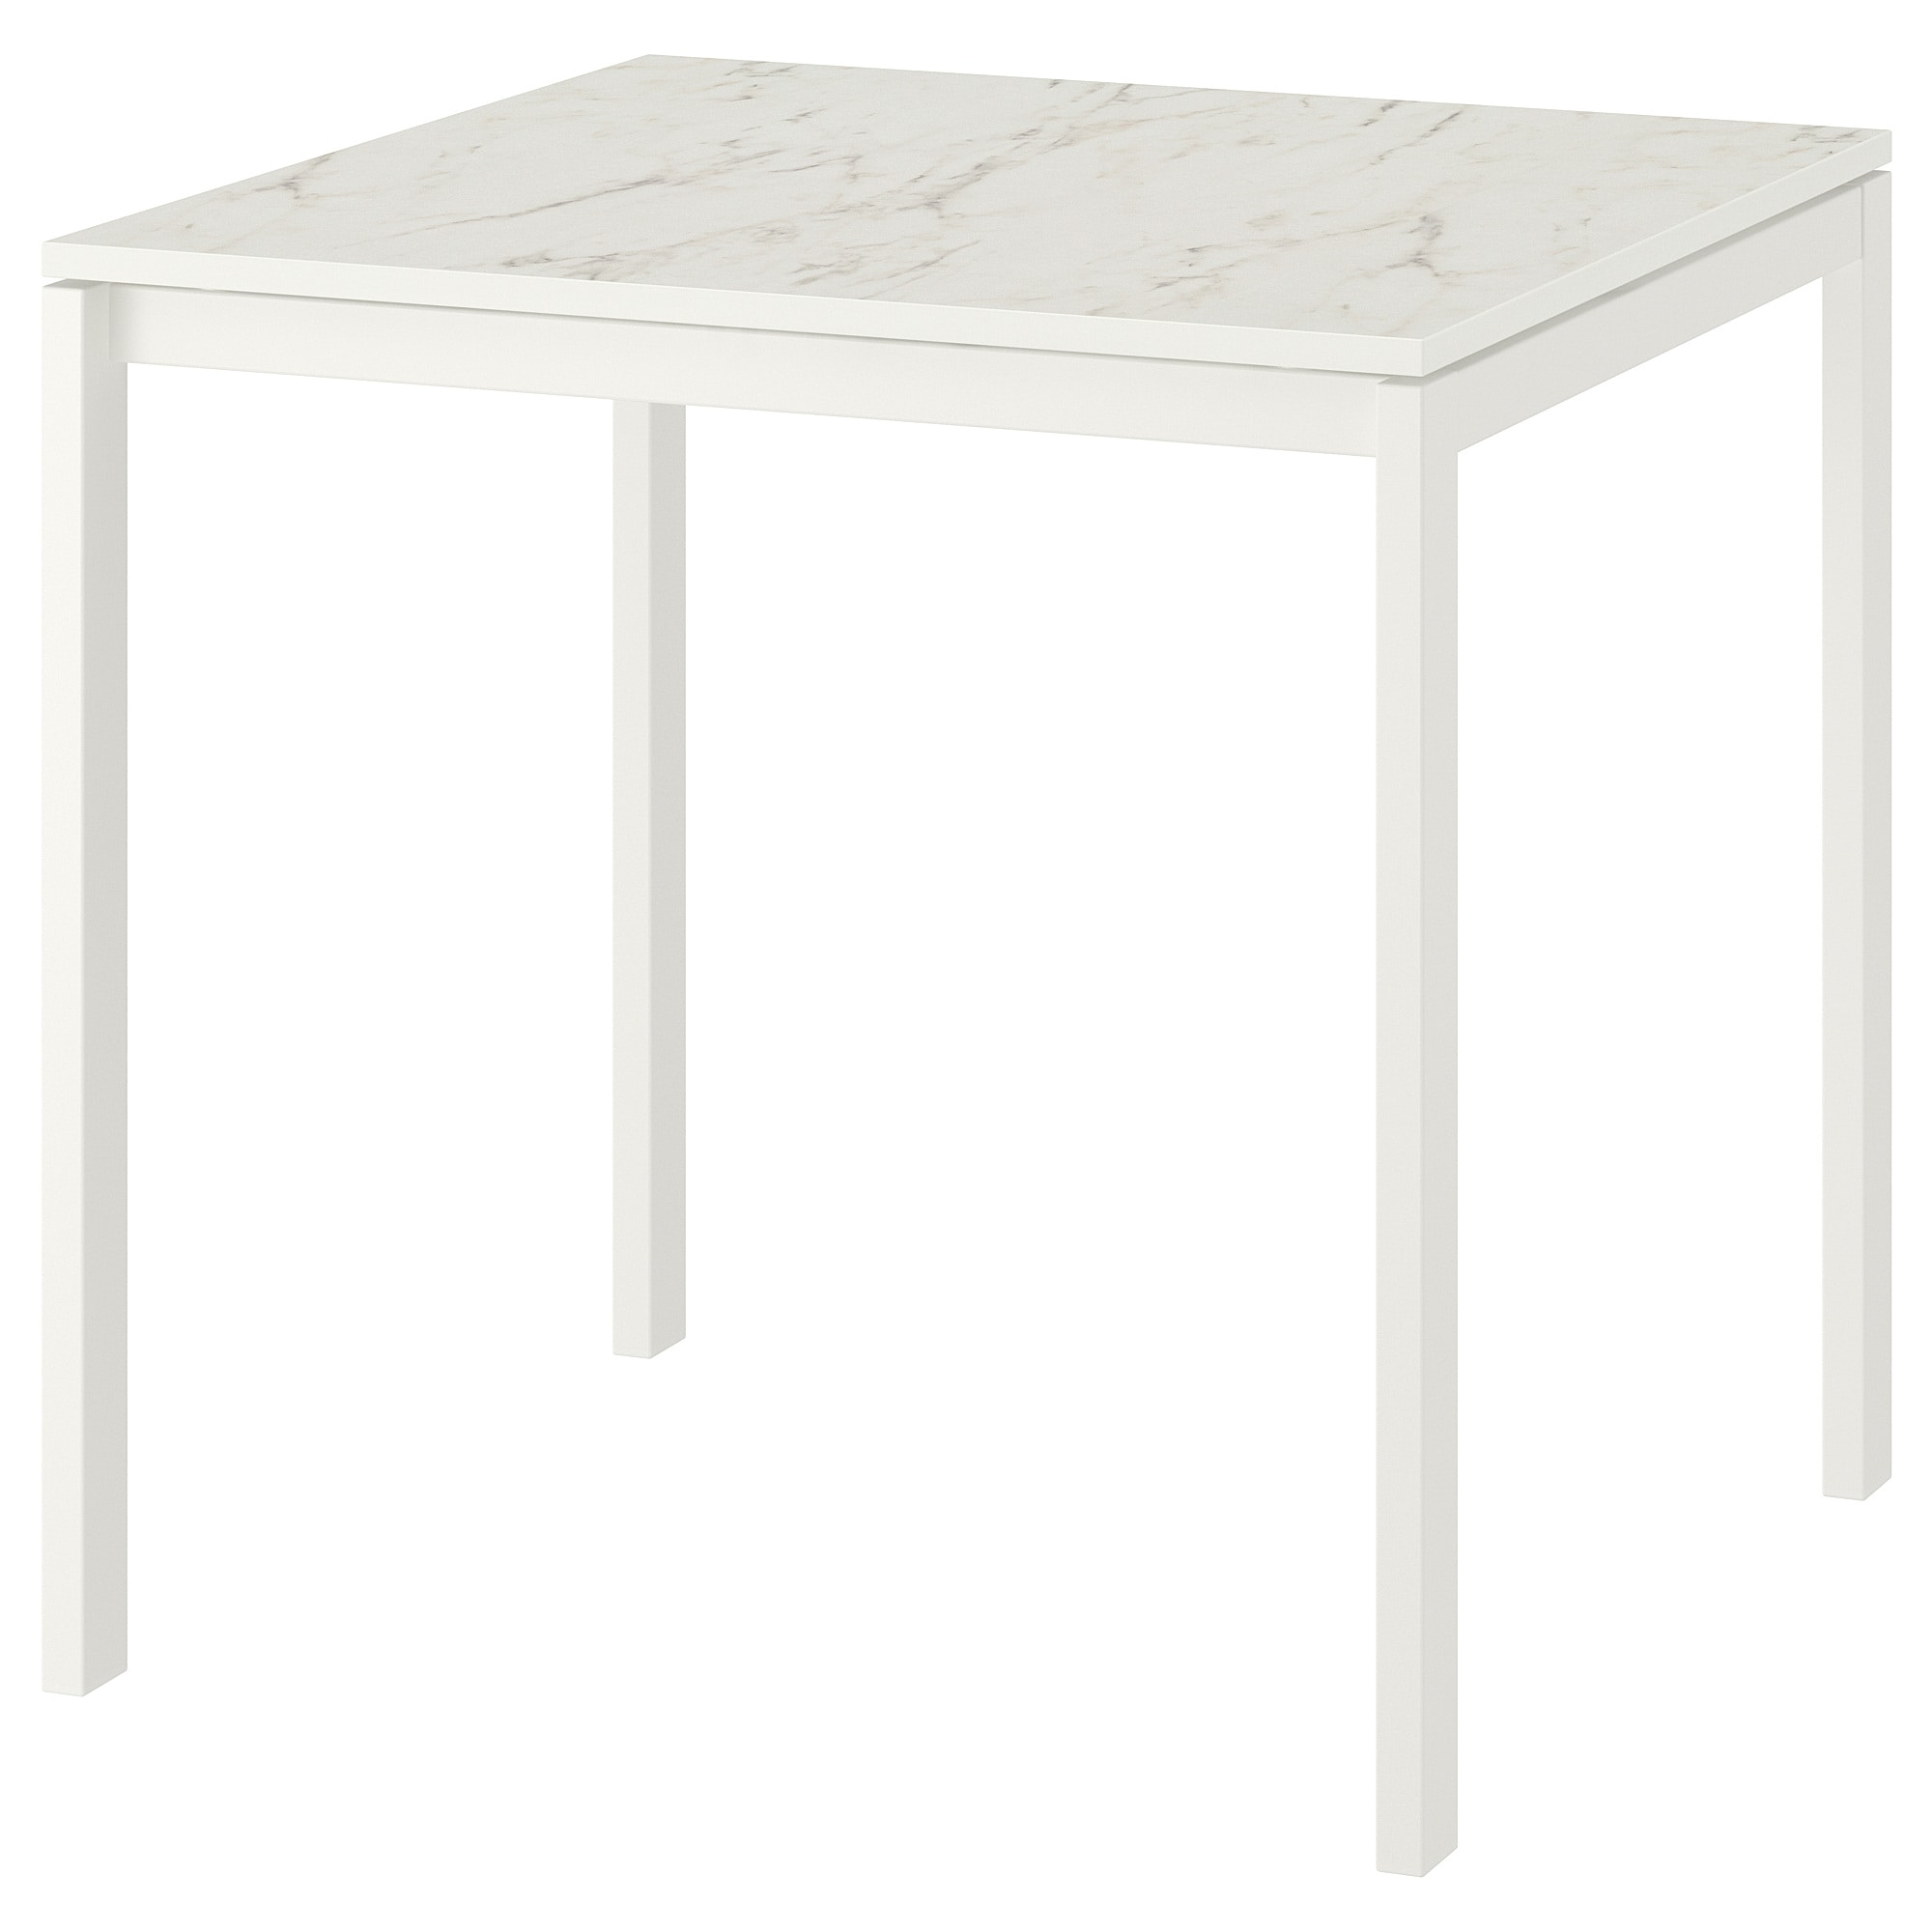 Marmortisch Ikea Table Melltorp White Marble White